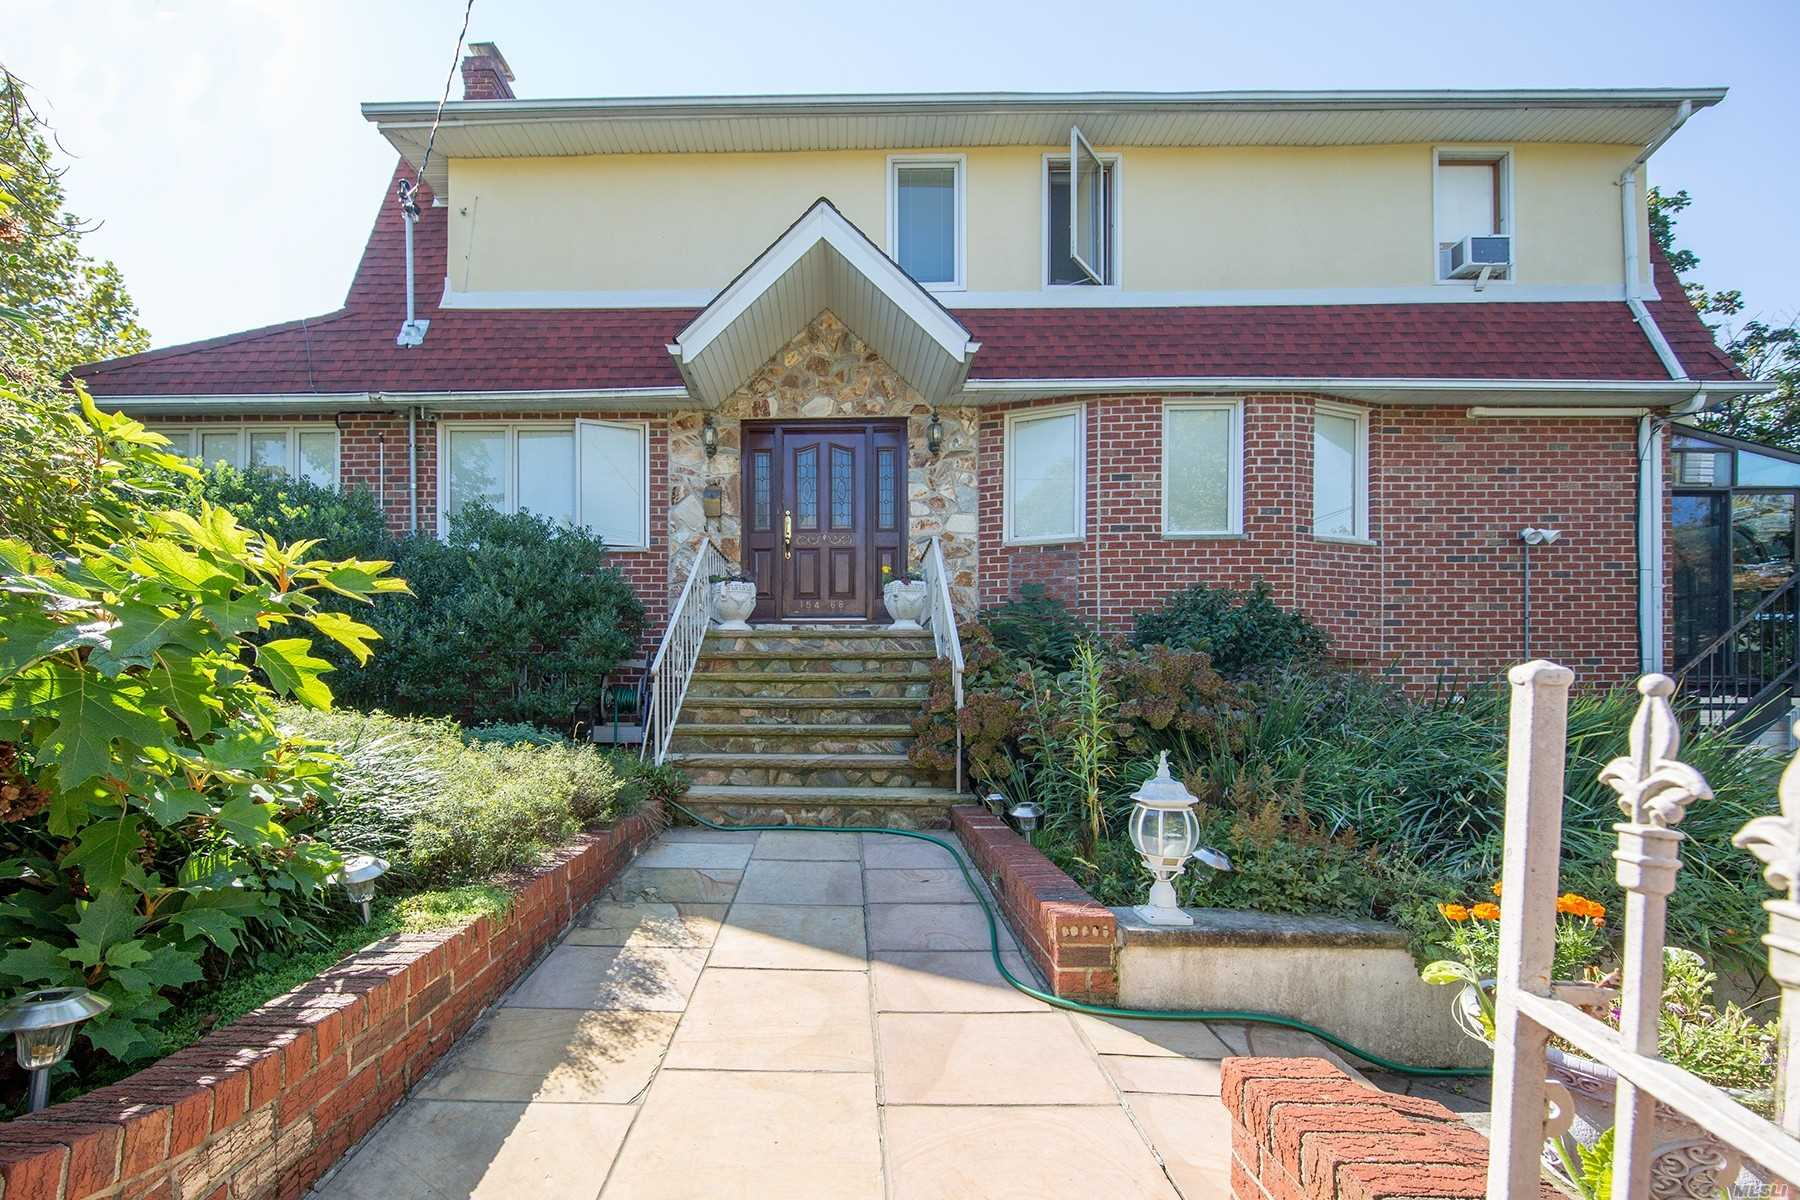 Legal 2 Family, 5Bedroom 4Bath, Modern Gourmet Kitchen With Samsung/Ge Appliances, Enjoy The Sauna With Personal Bath, 2 Fireplaces, Wine Refrig, 3 Car Driveway, Bbq Patio , And A Beautiful Glass Enclosed Relaxing Deck 19 Ft X 11 Ft , Separate Entrance For The Apartment. Walking Distance To Food Establishment And Supermarket, Close To Bus Station And More!